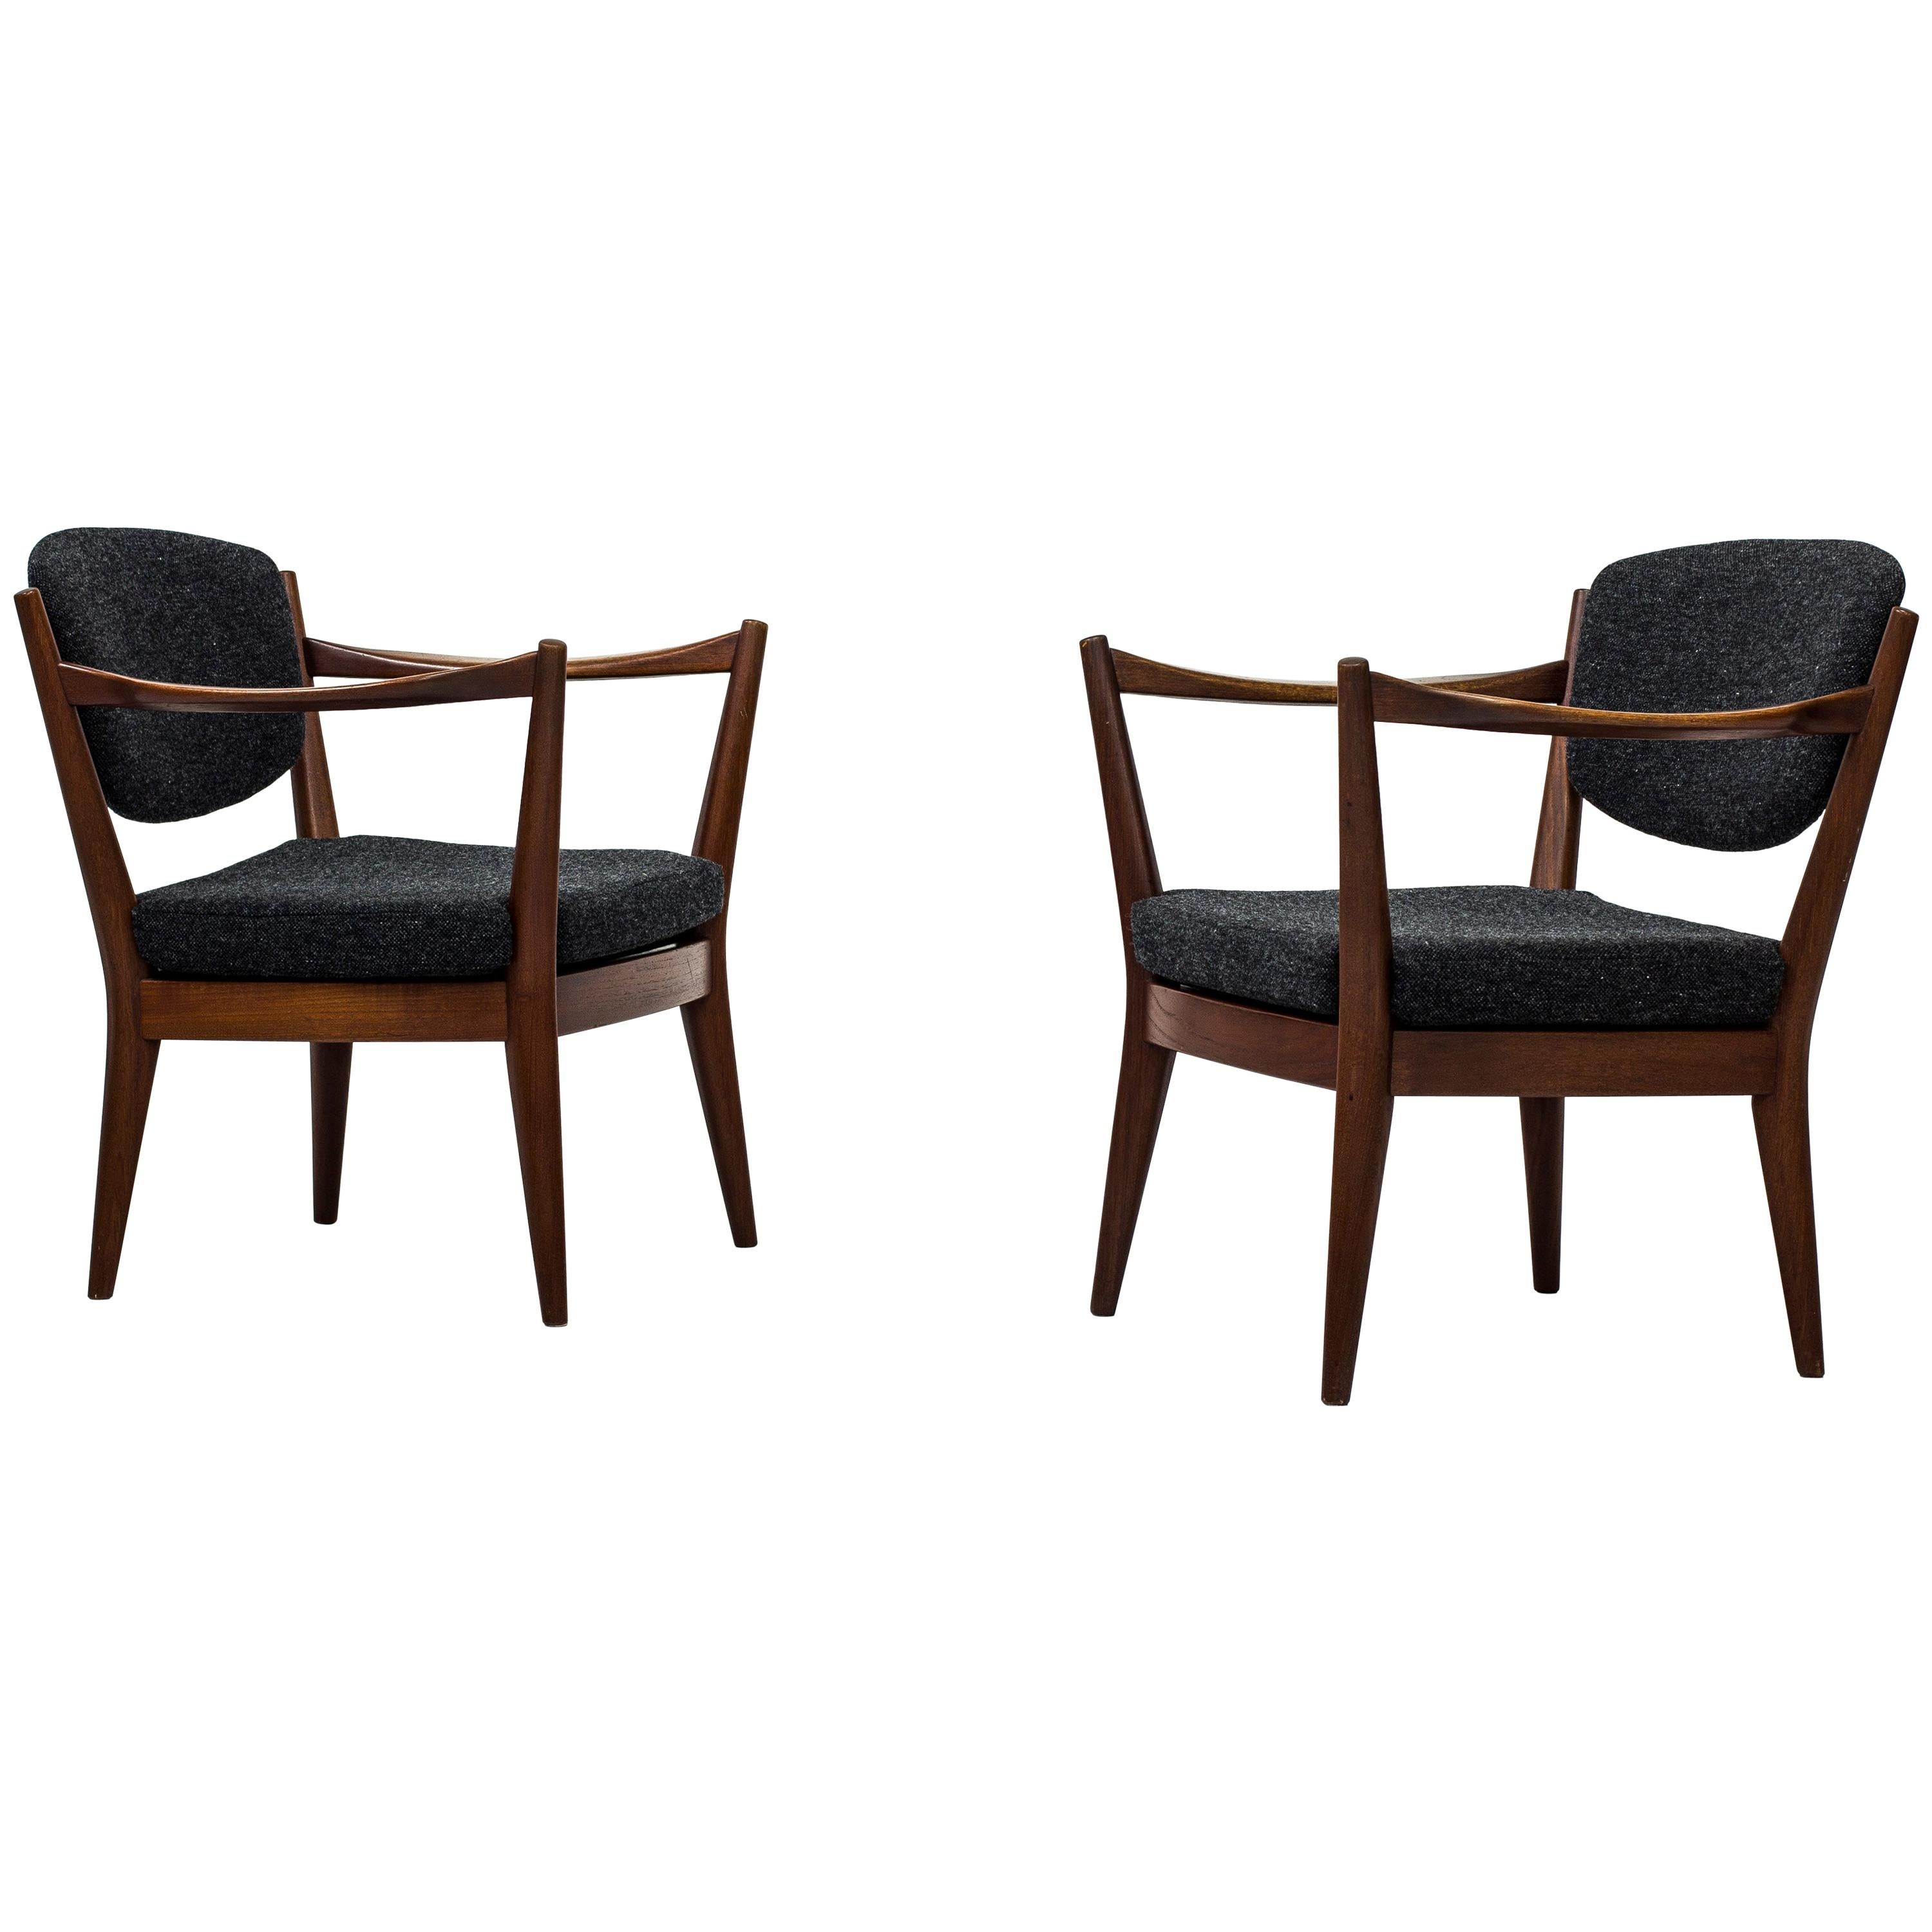 """Pair of """"The Fireplace Chair"""" by Fredrik Kayser & Adolf Relling, Norway, 1950s"""